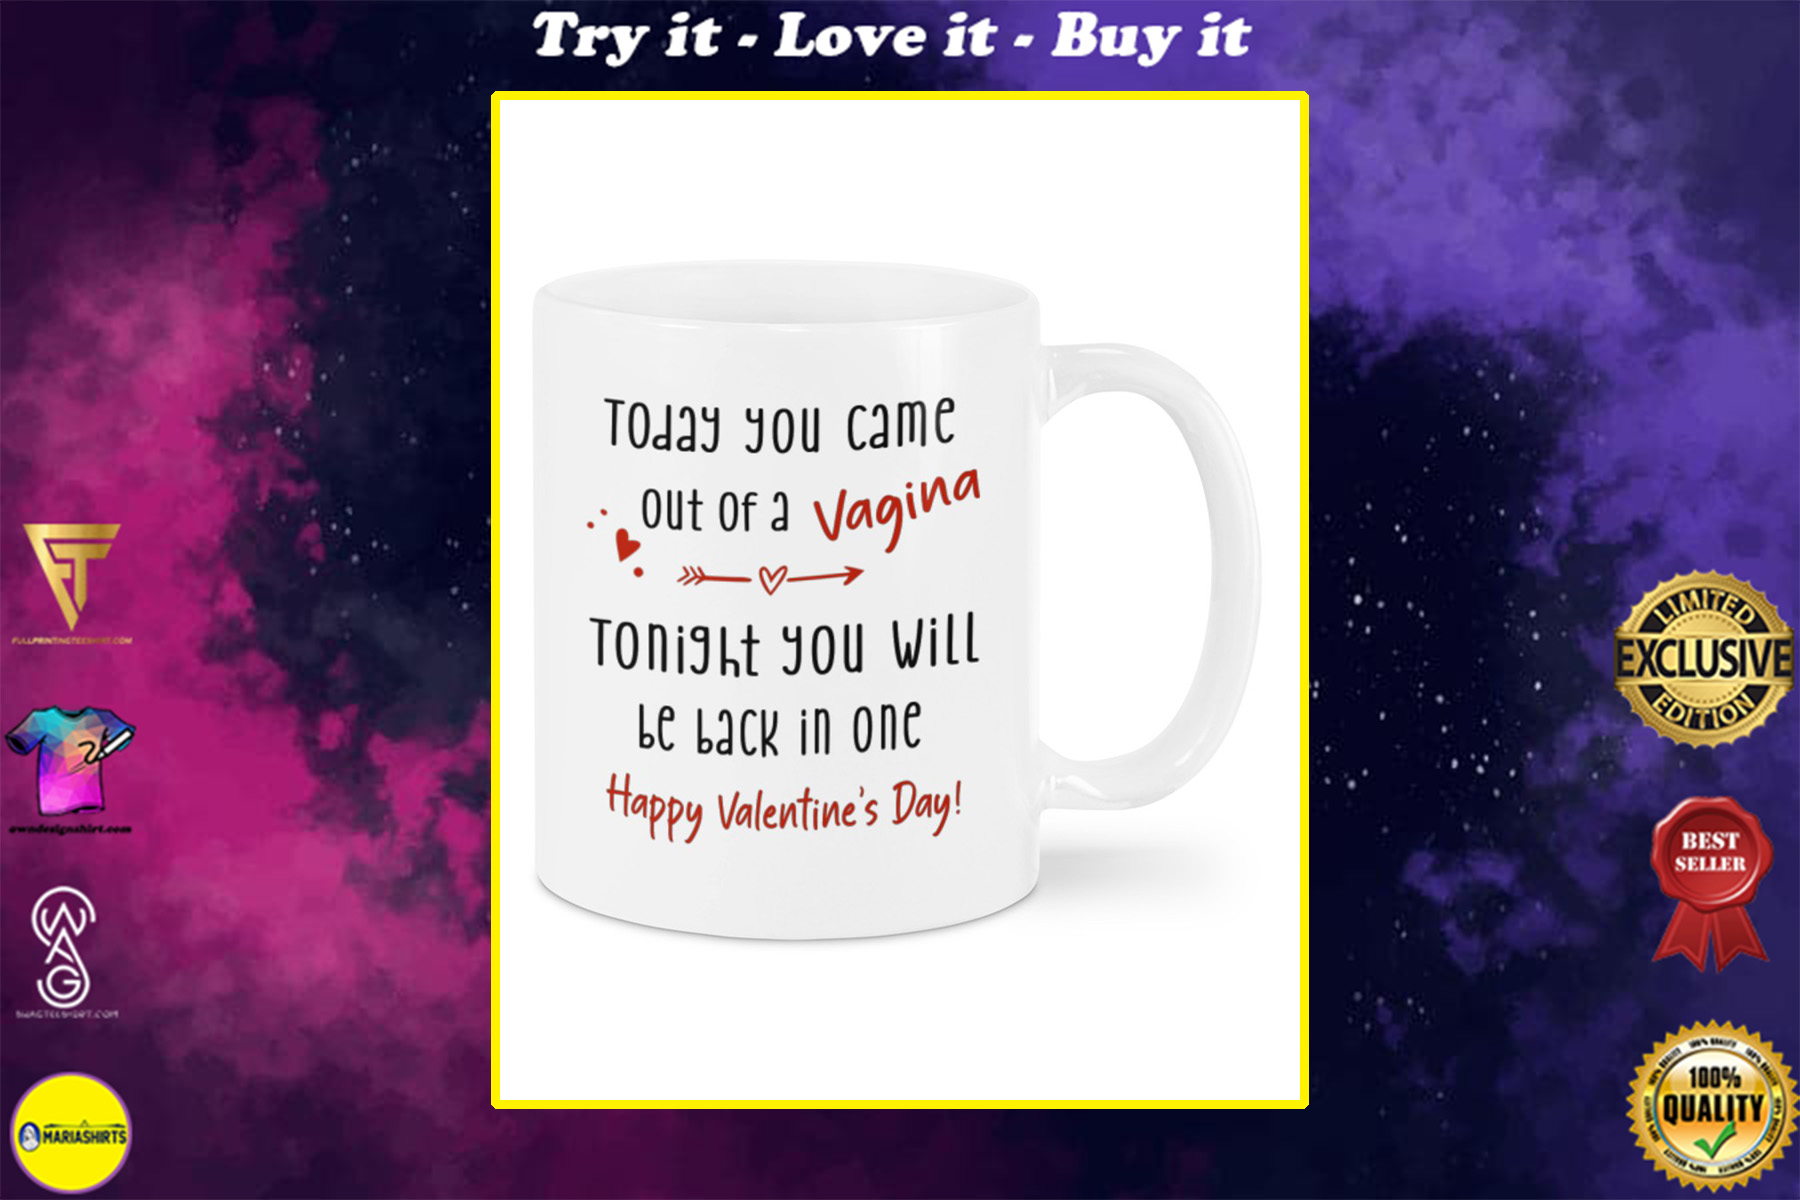 today you came out of a vagina tonight you will be back in one happy valentine's day mug